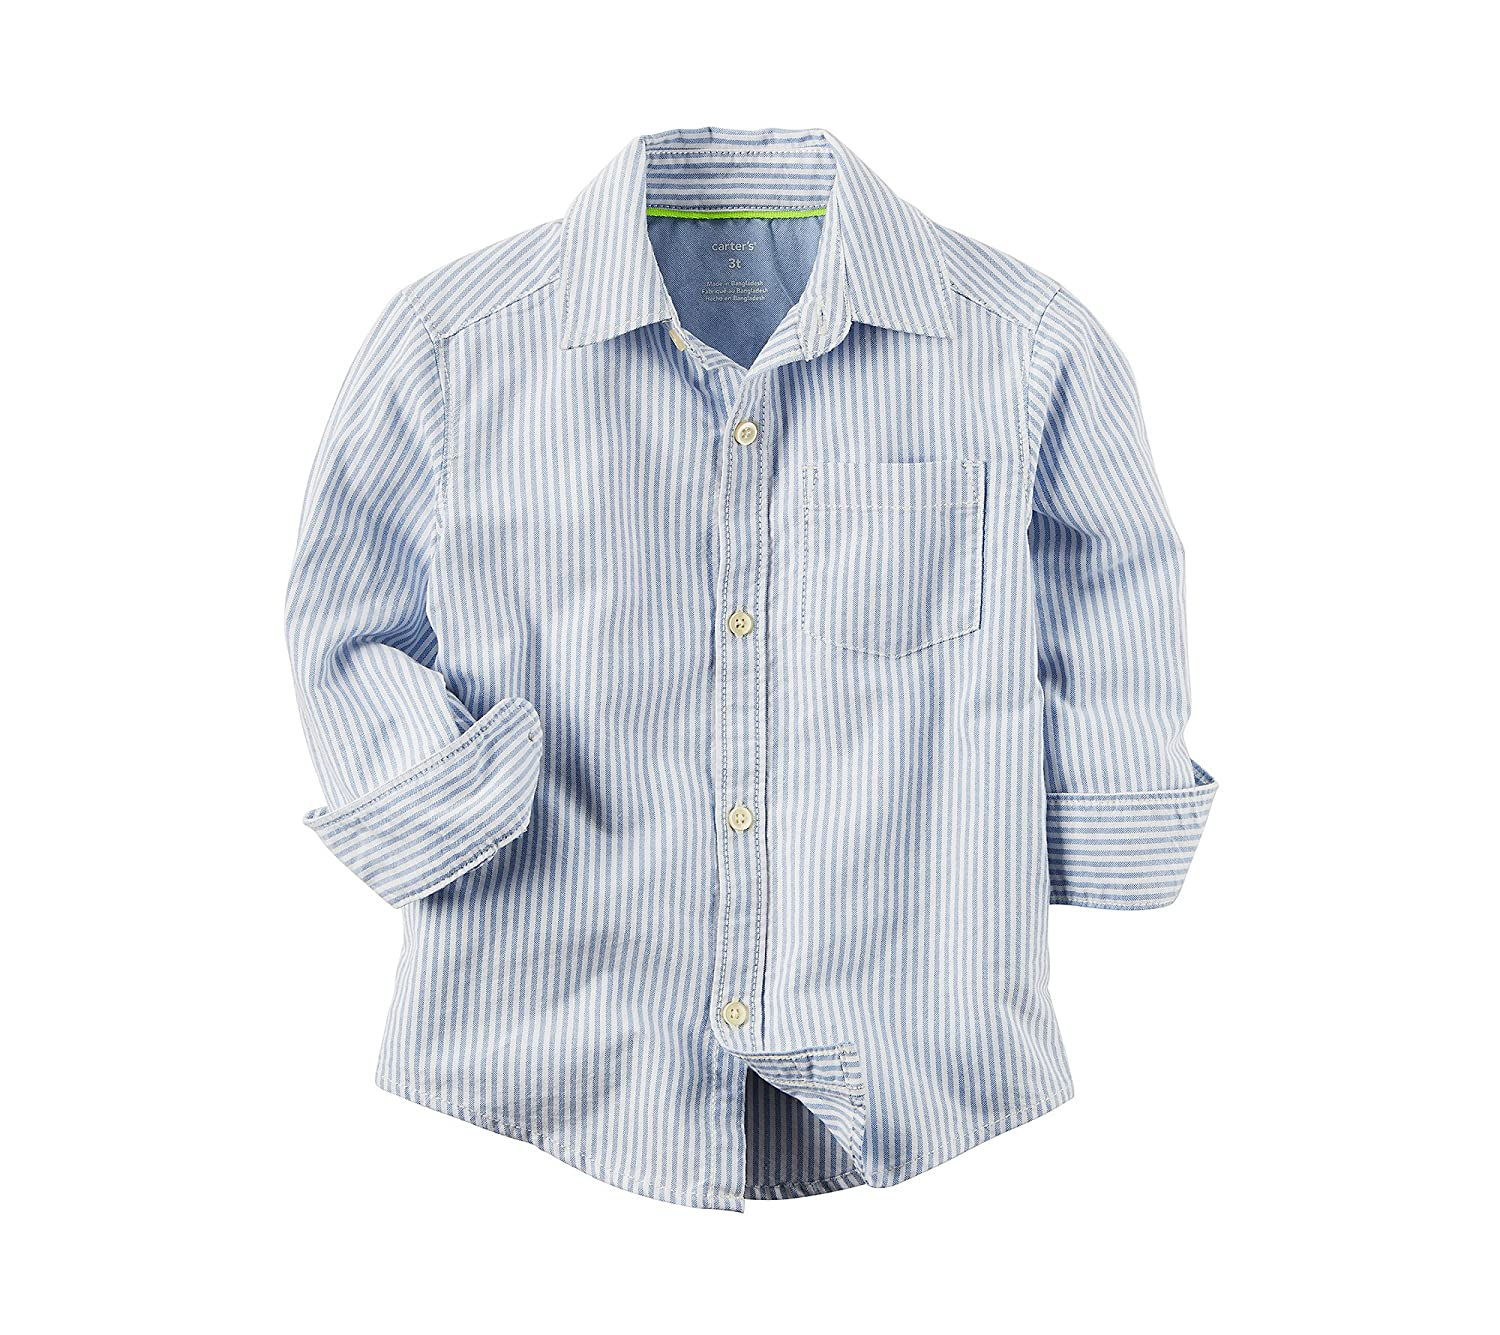 Carters Boys 2T-8 Striped Long Sleeve Woven Top